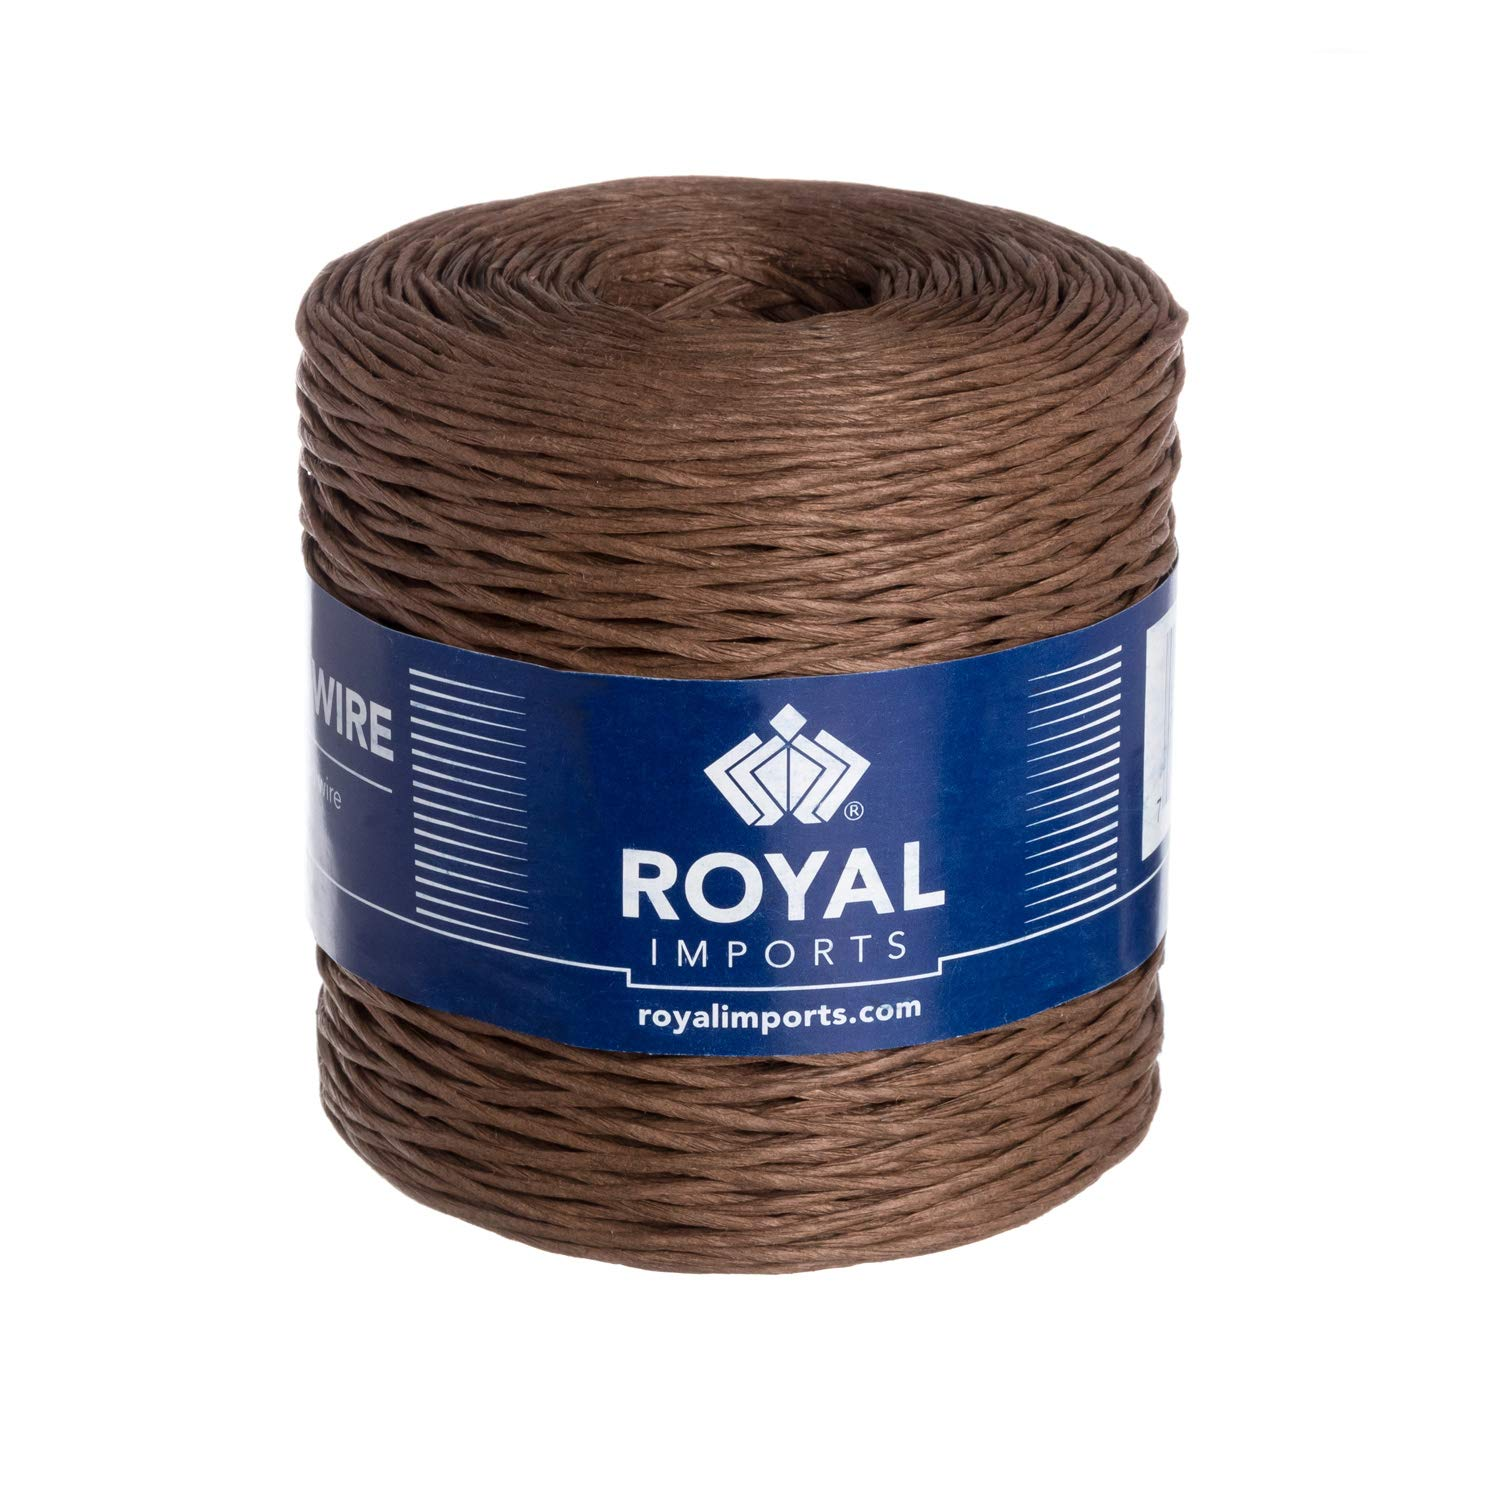 Brown Floral Bind Wire Wrap Twine, Paper Covered Waterproof Rustic Vine for Flower Bouquets 26 Gauge (673 Ft) by Royal Imports by Royal Imports